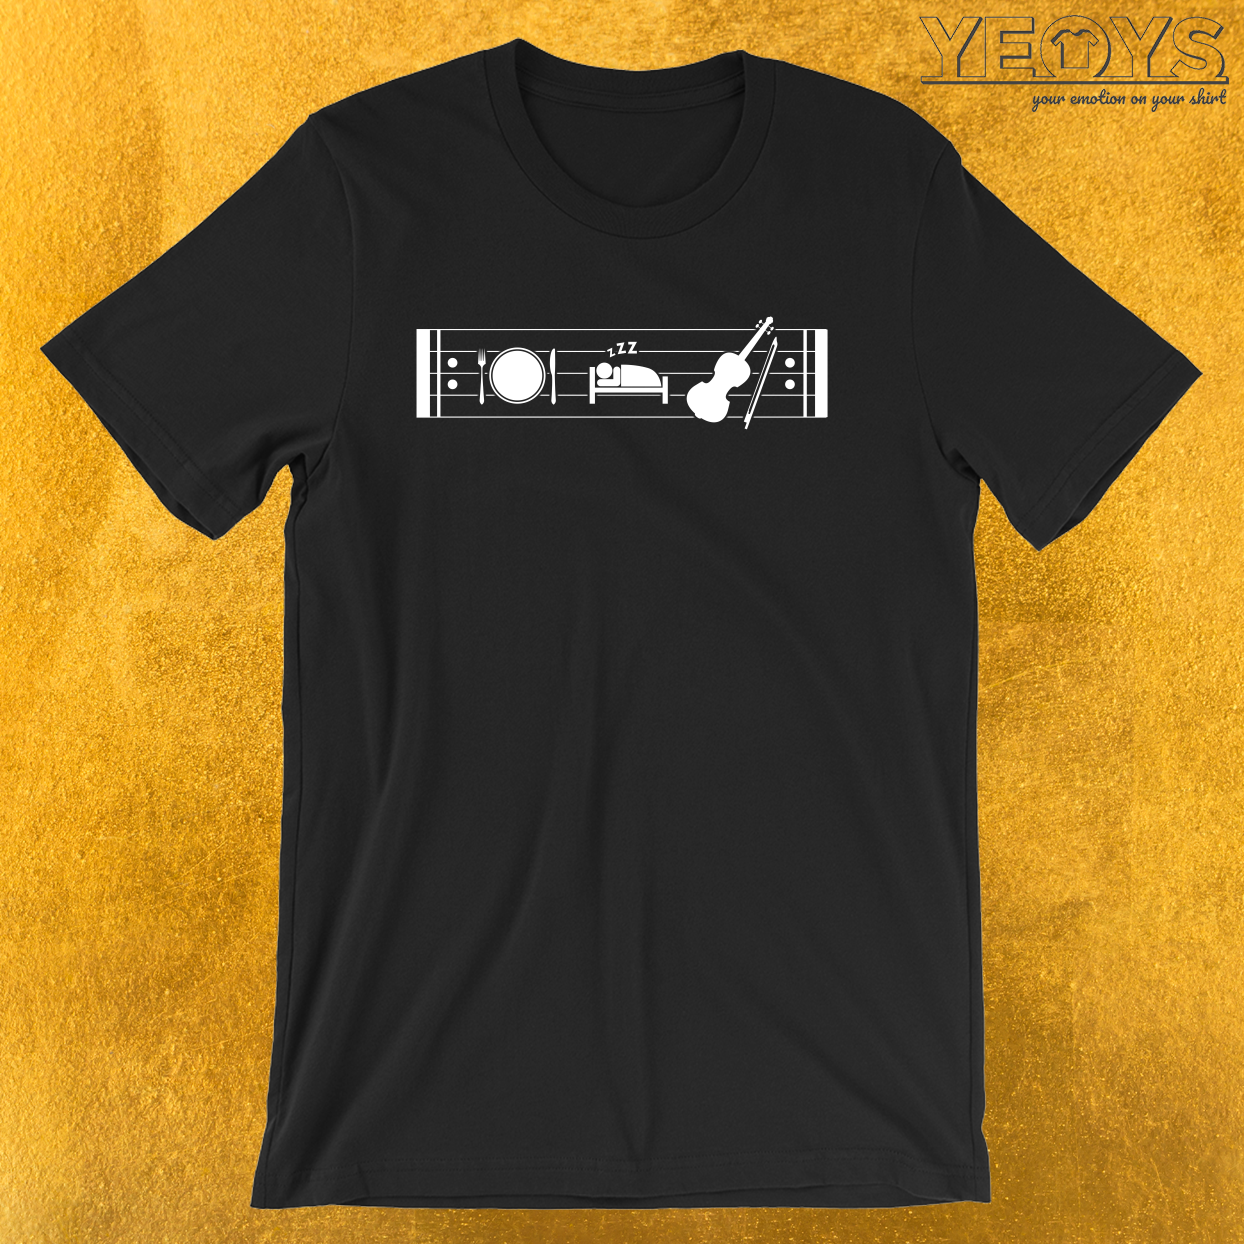 Eat Sleep Violin Repeat – Violin Music Tee